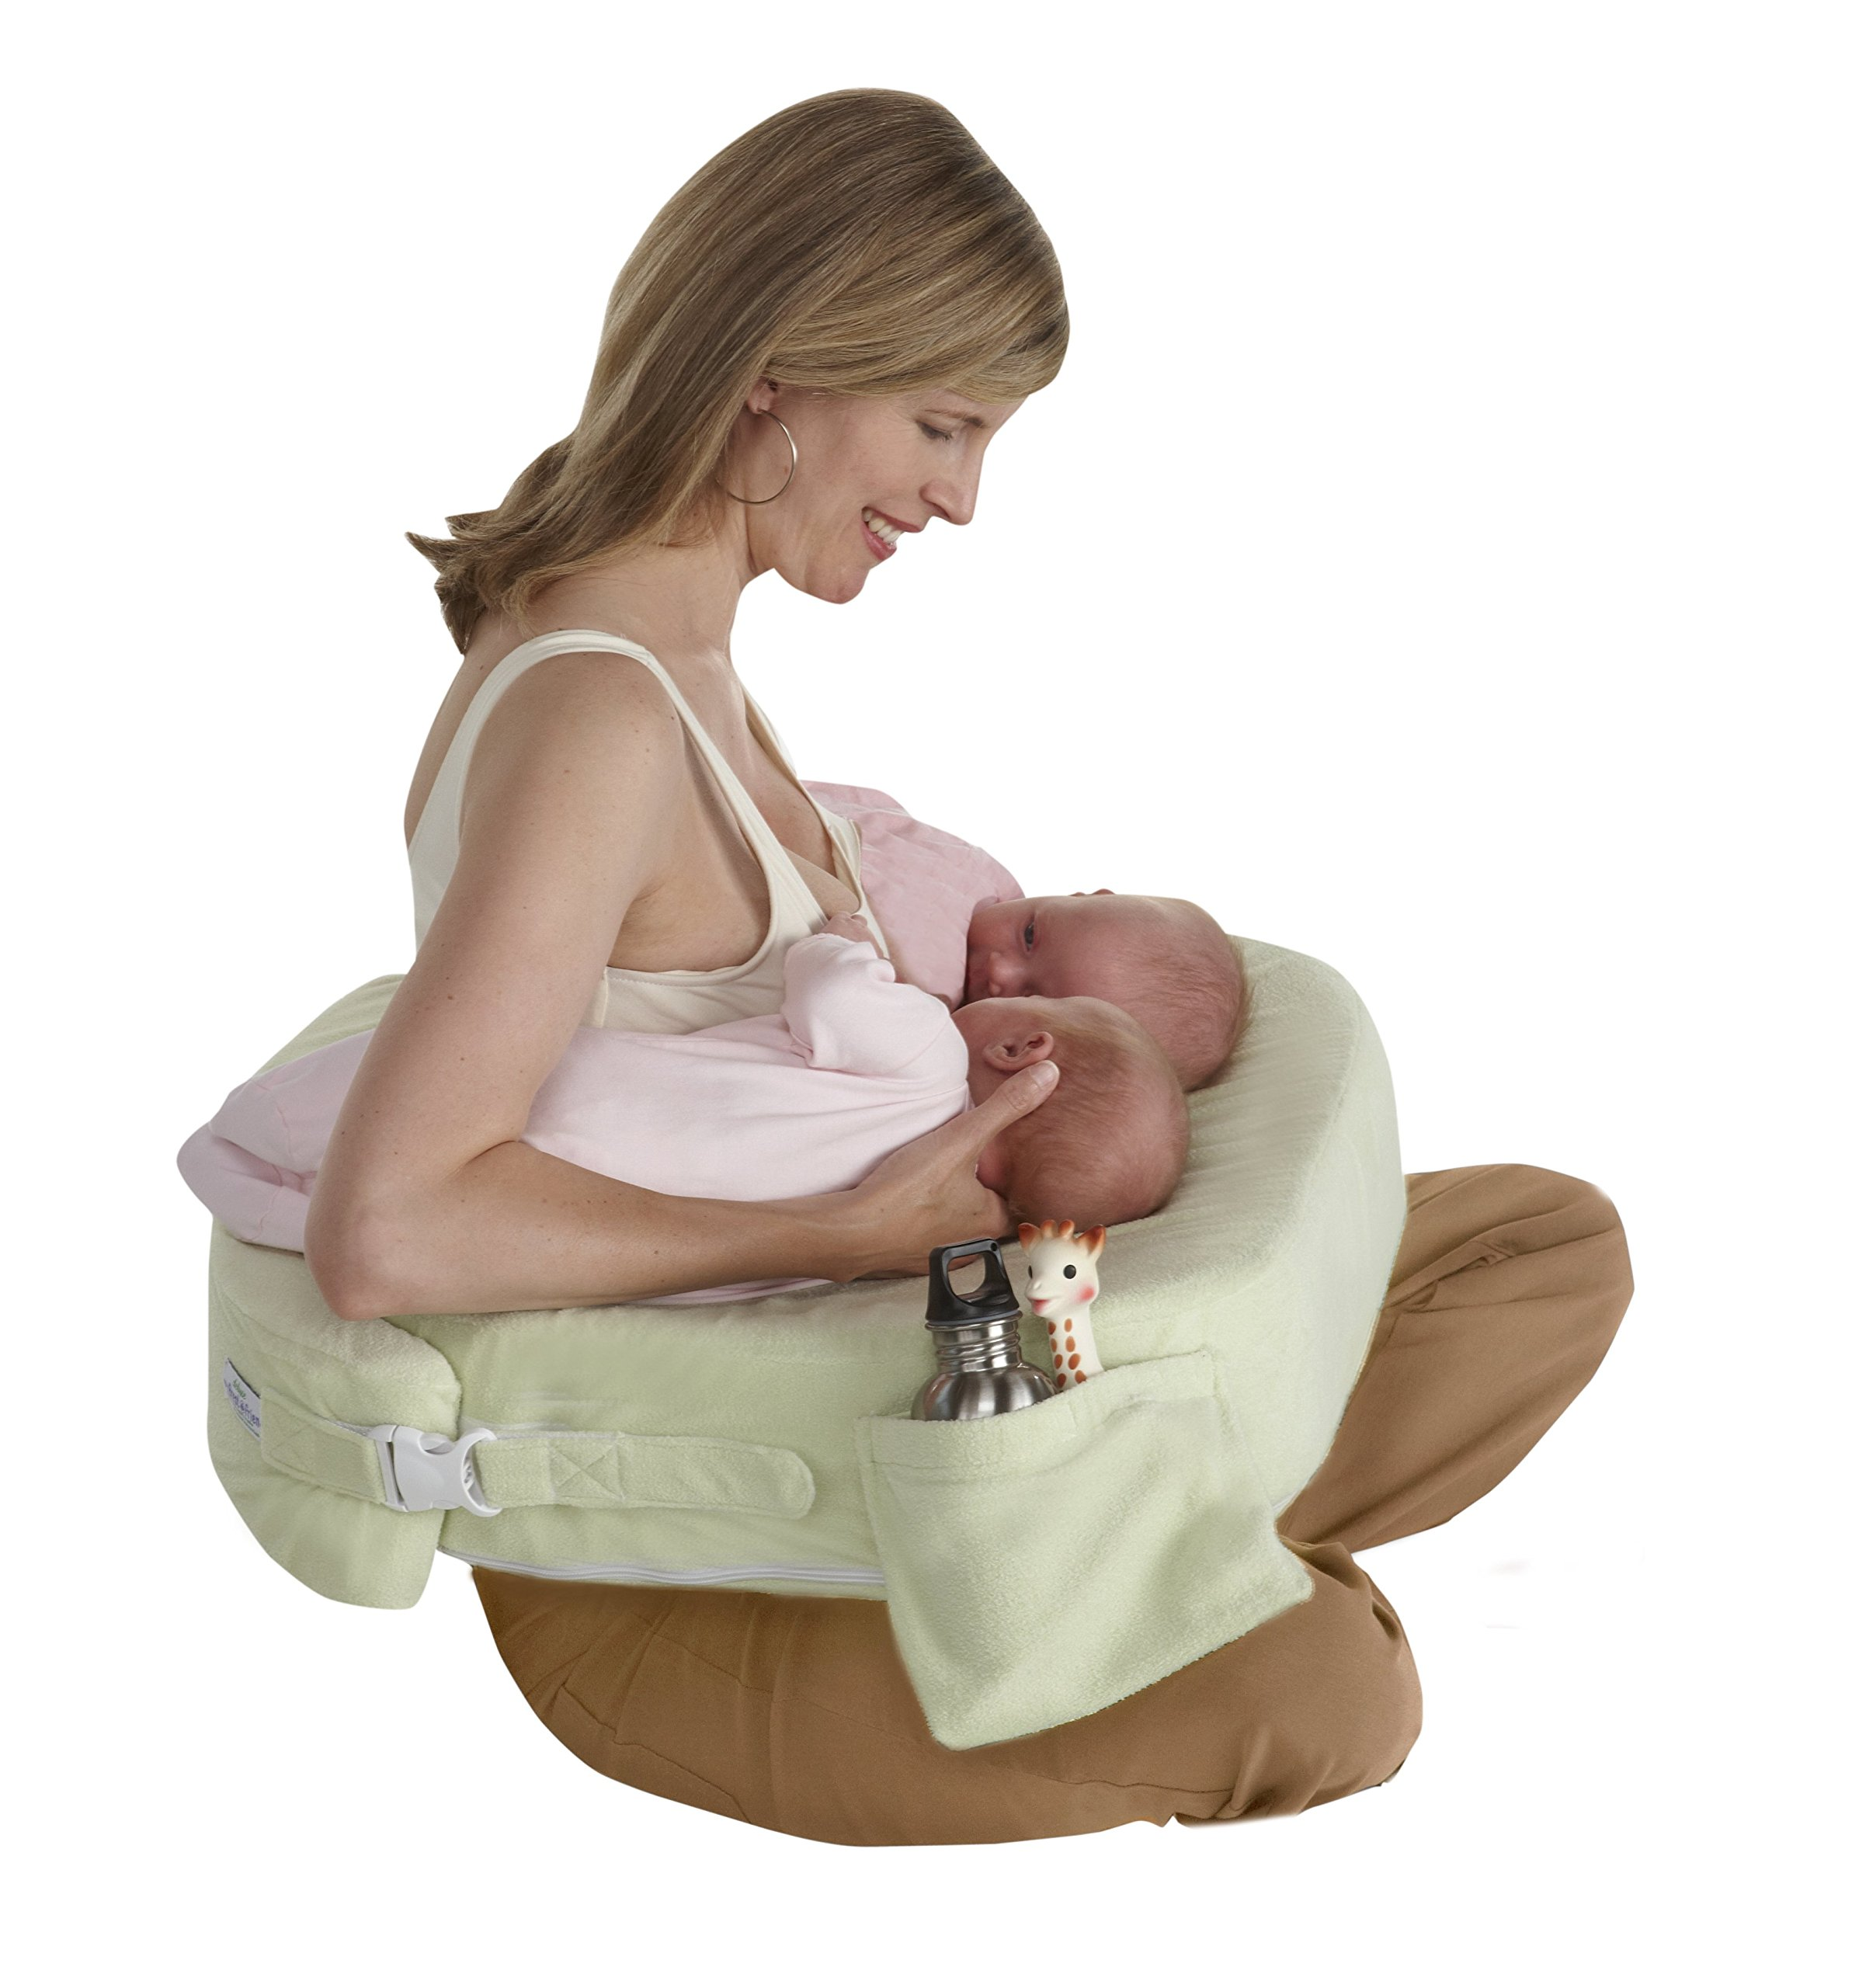 My Brest Friend Supportive Nursing Pillow for Twins 0-12 Months, Plus-Size, Light Green by My Brest Friend (Image #1)